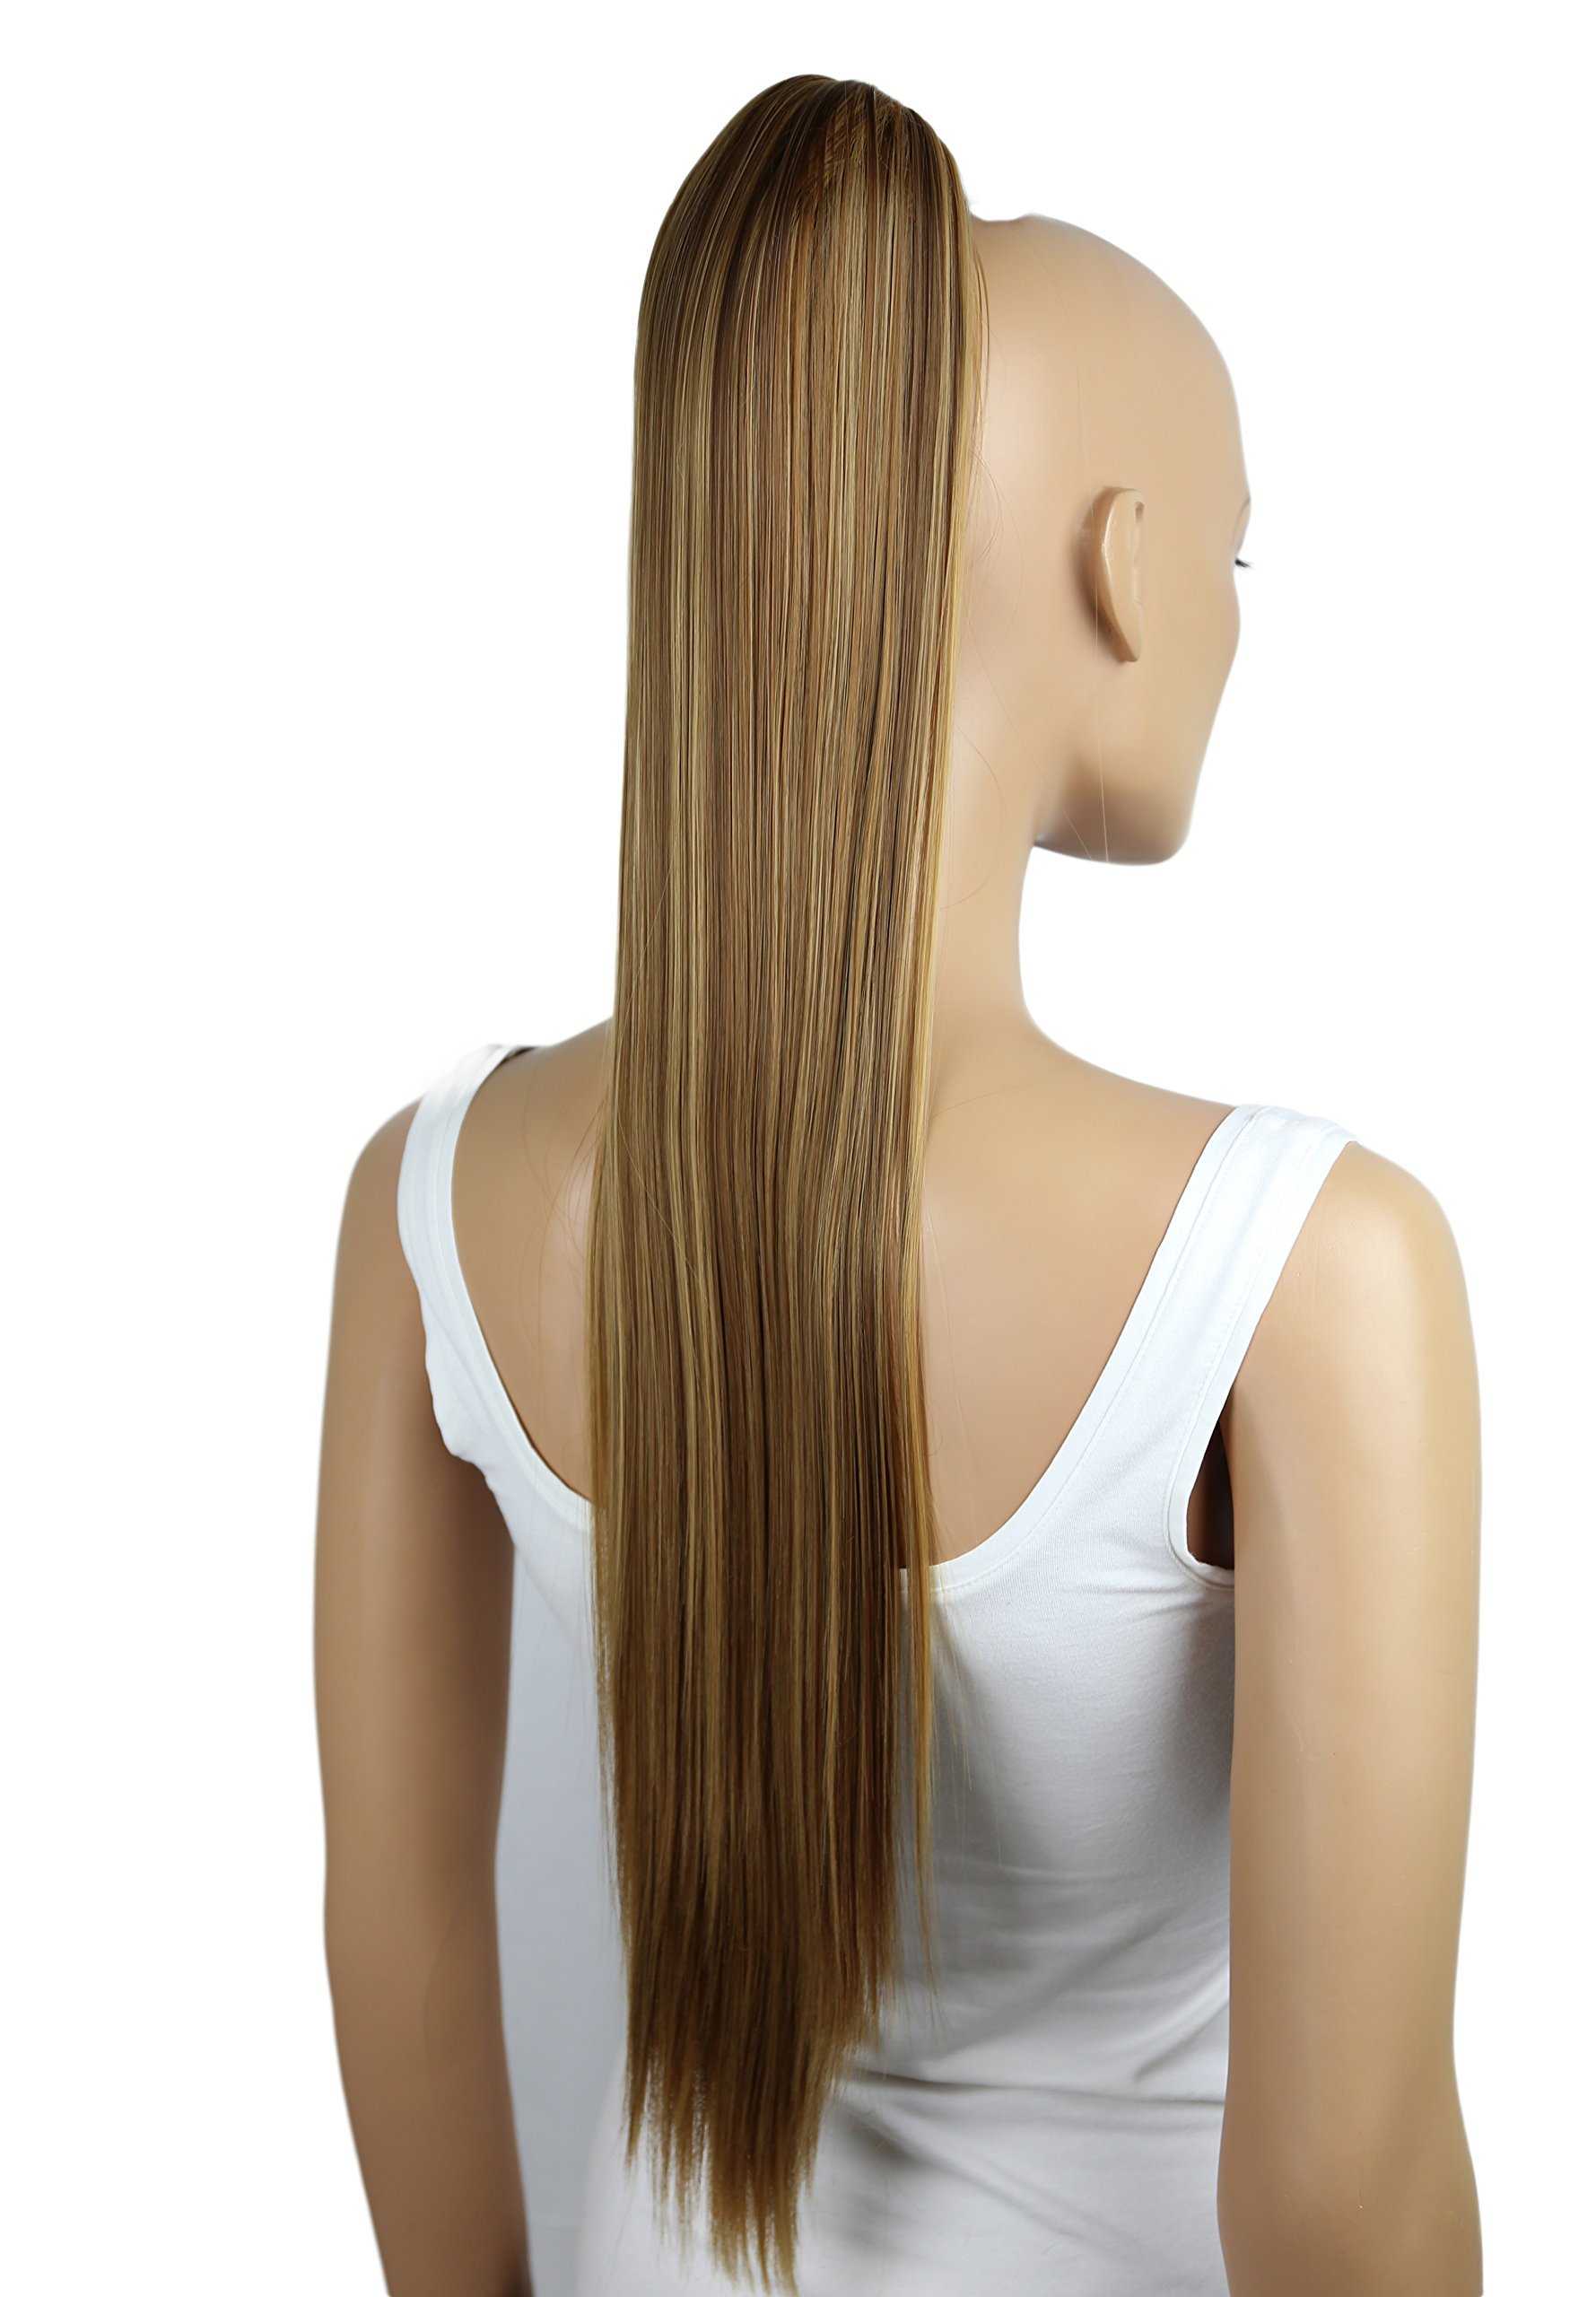 PRETTYSHOP Hairpiece Ponytail Clip on Extension Long hair smooth Heat-Resisting 27'' brown blond mix # 6H27 H165 by Prettyshop Hairpiece-Ponytail (Image #2)